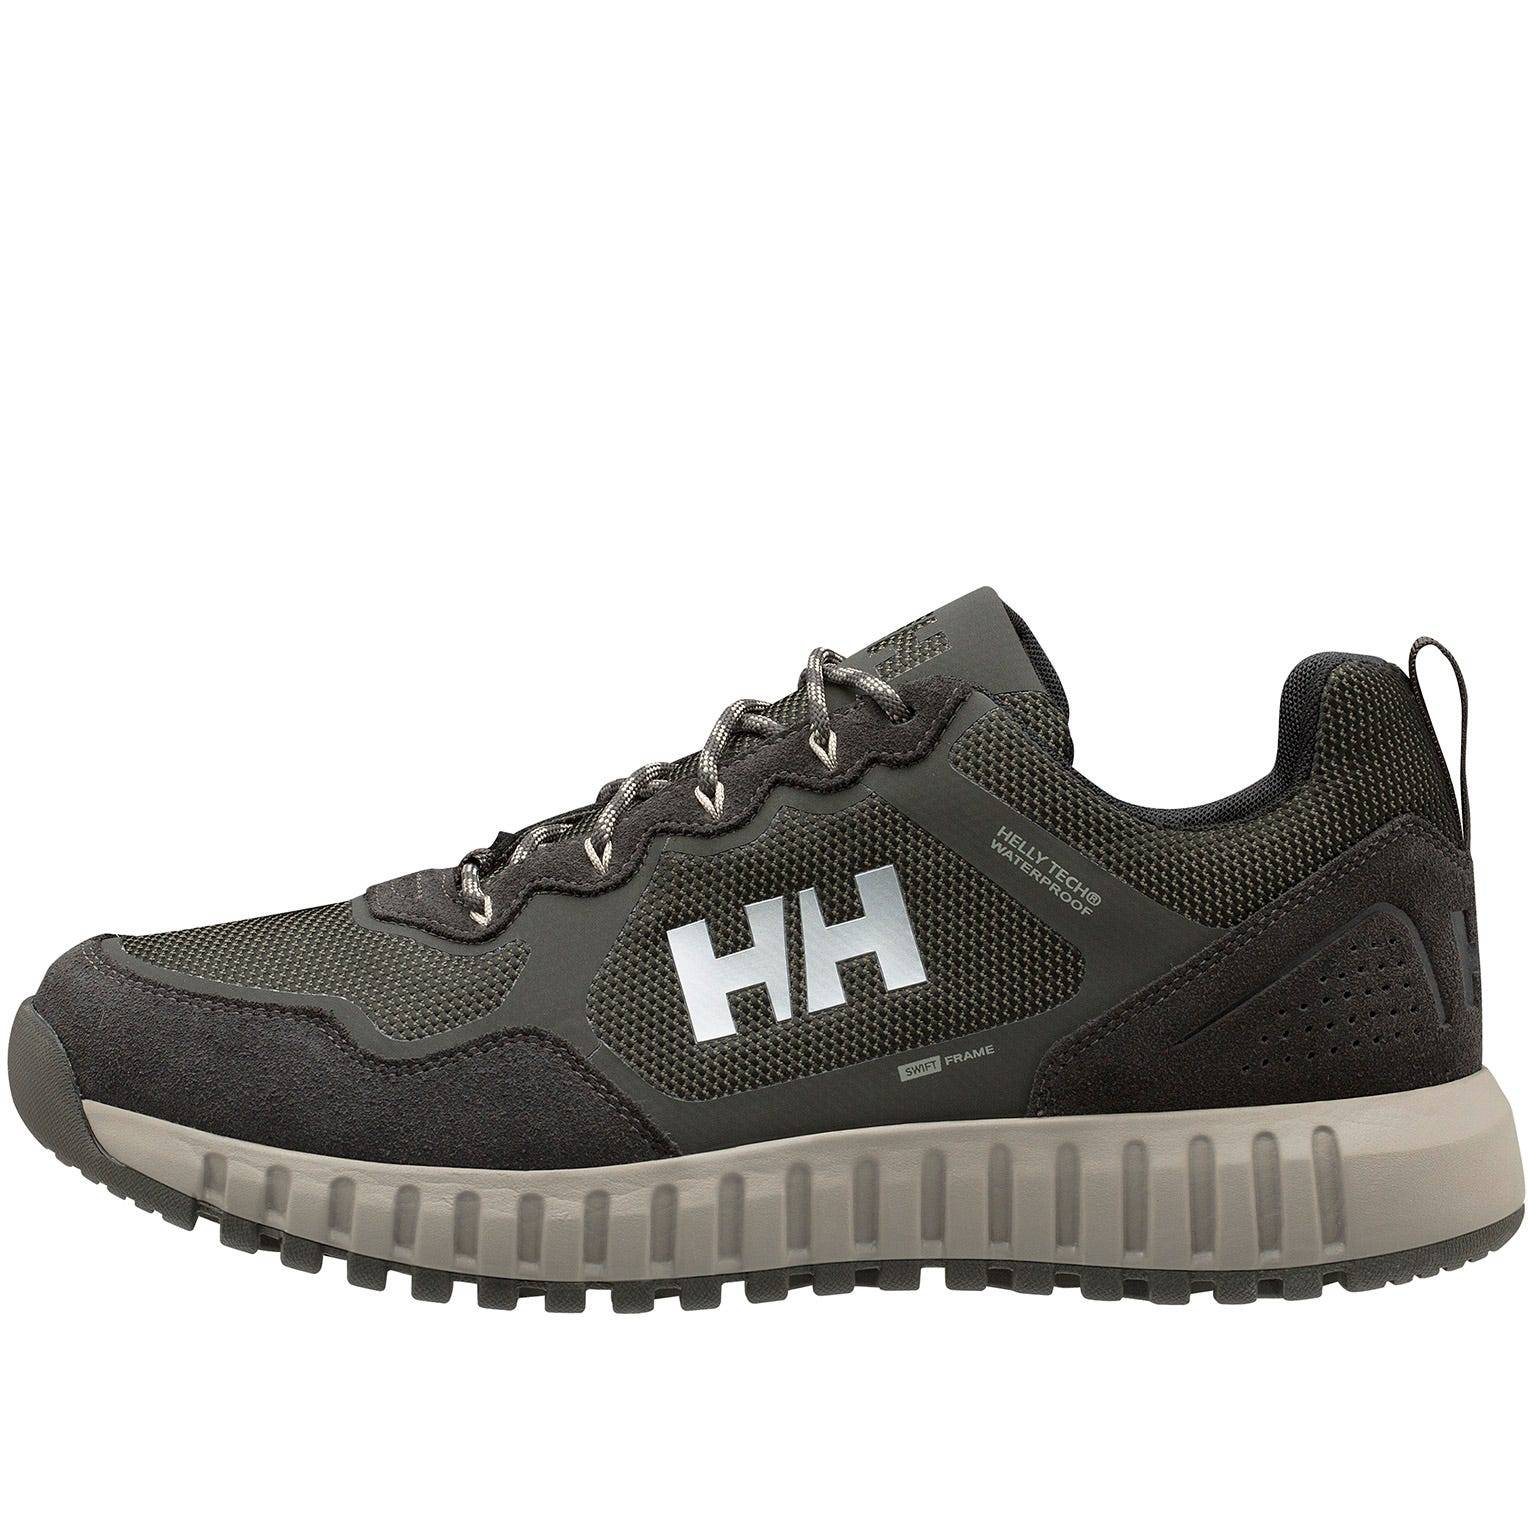 Helly Hansen Monashee Ullr Low Ht Hiking Boot Green 45/11